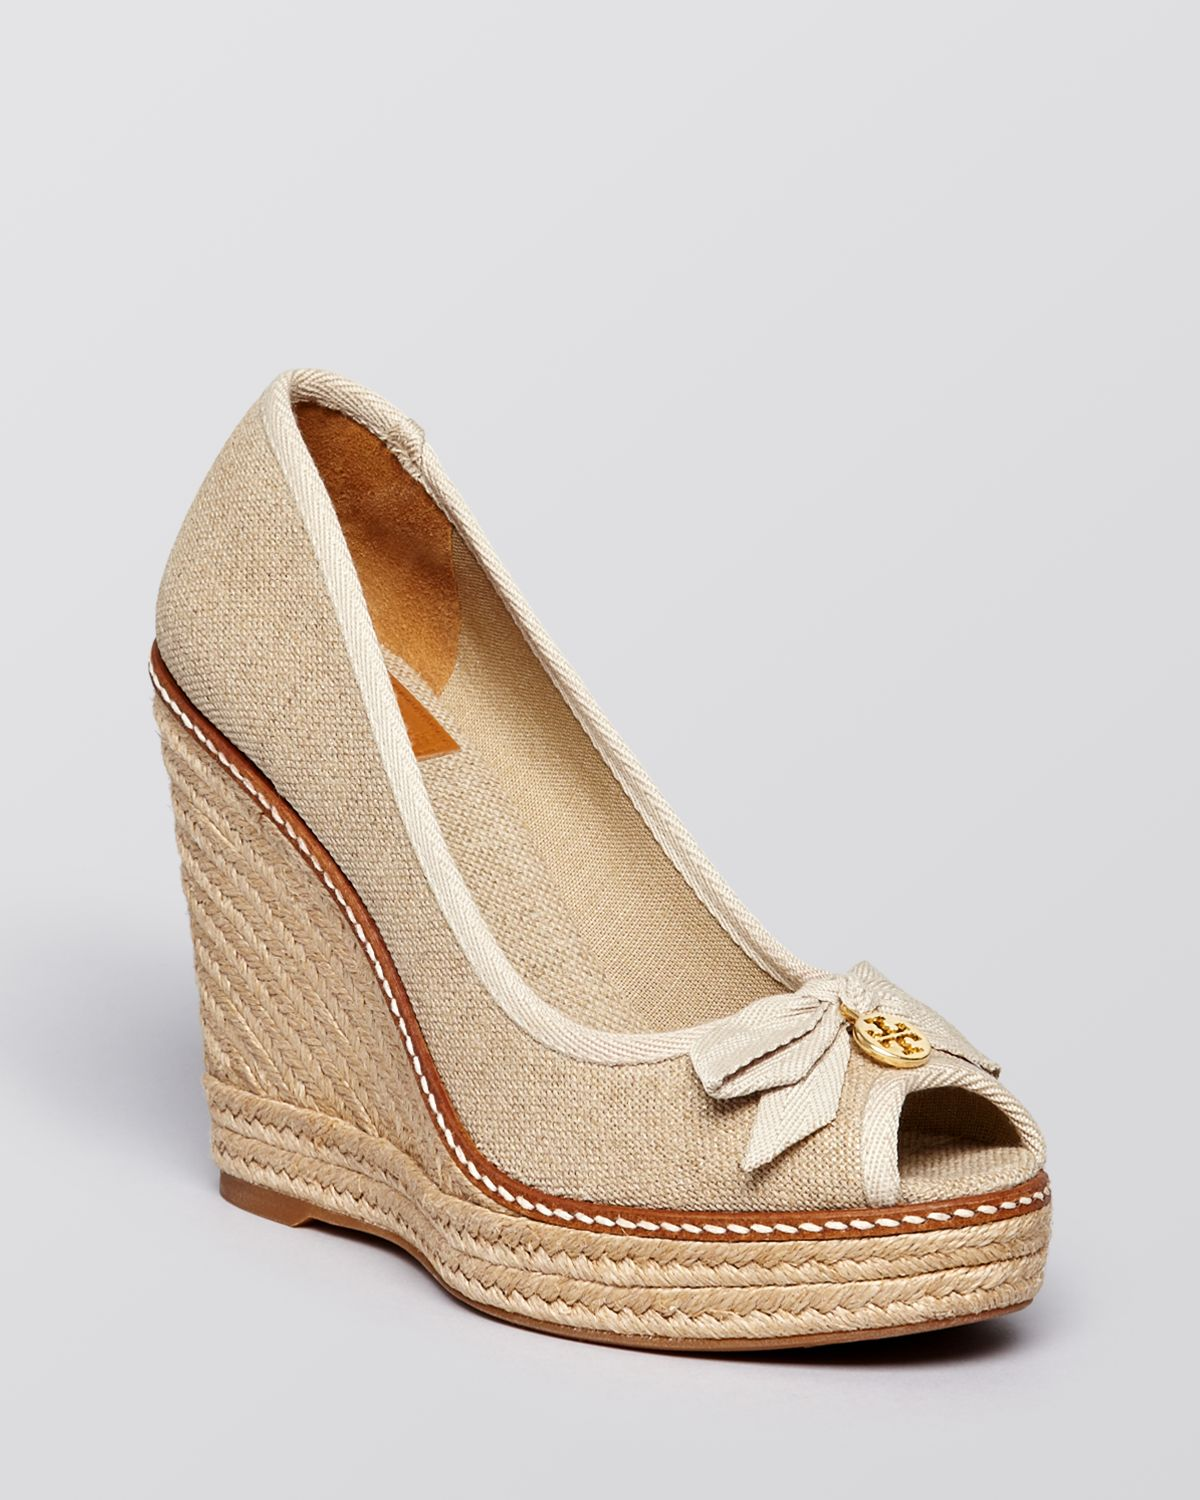 78e5ddfd10a4 Lyst - Tory Burch Platform Wedge Espadrille Pumps - Jackie in Natural